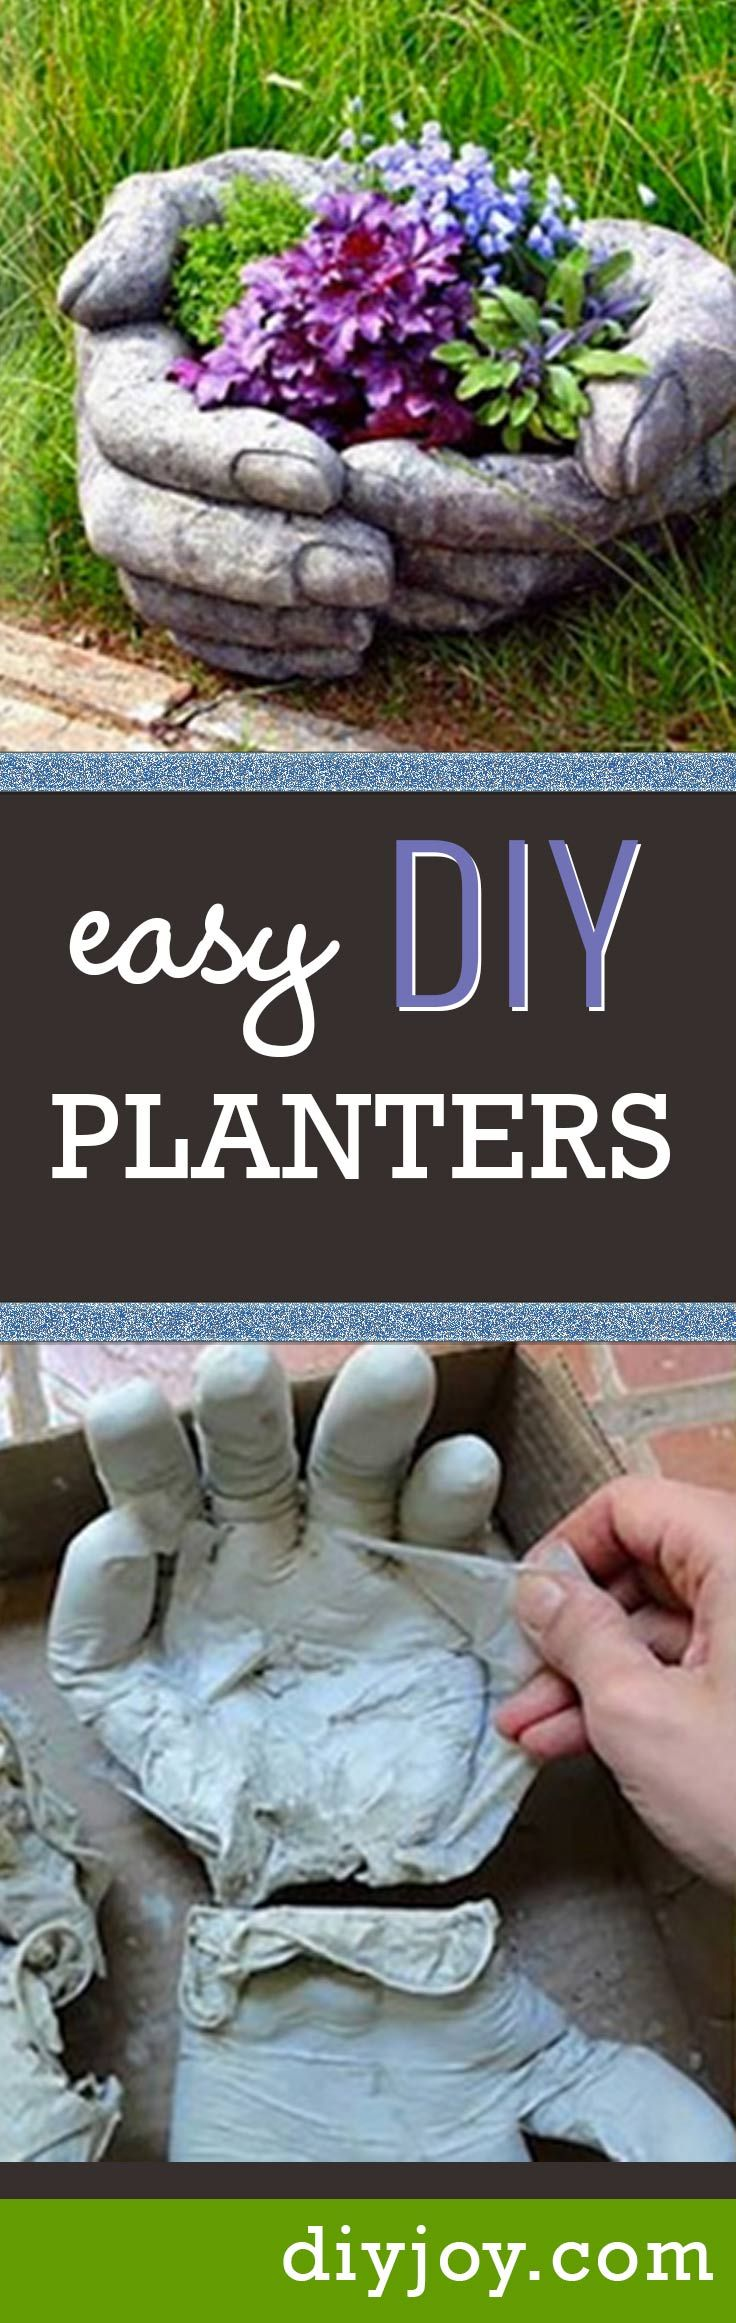 Easy diy planters for cool do it yourself gardening idea concrete easy diy planters for cool do it yourself gardening idea concrete pots in hand shade solutioingenieria Choice Image